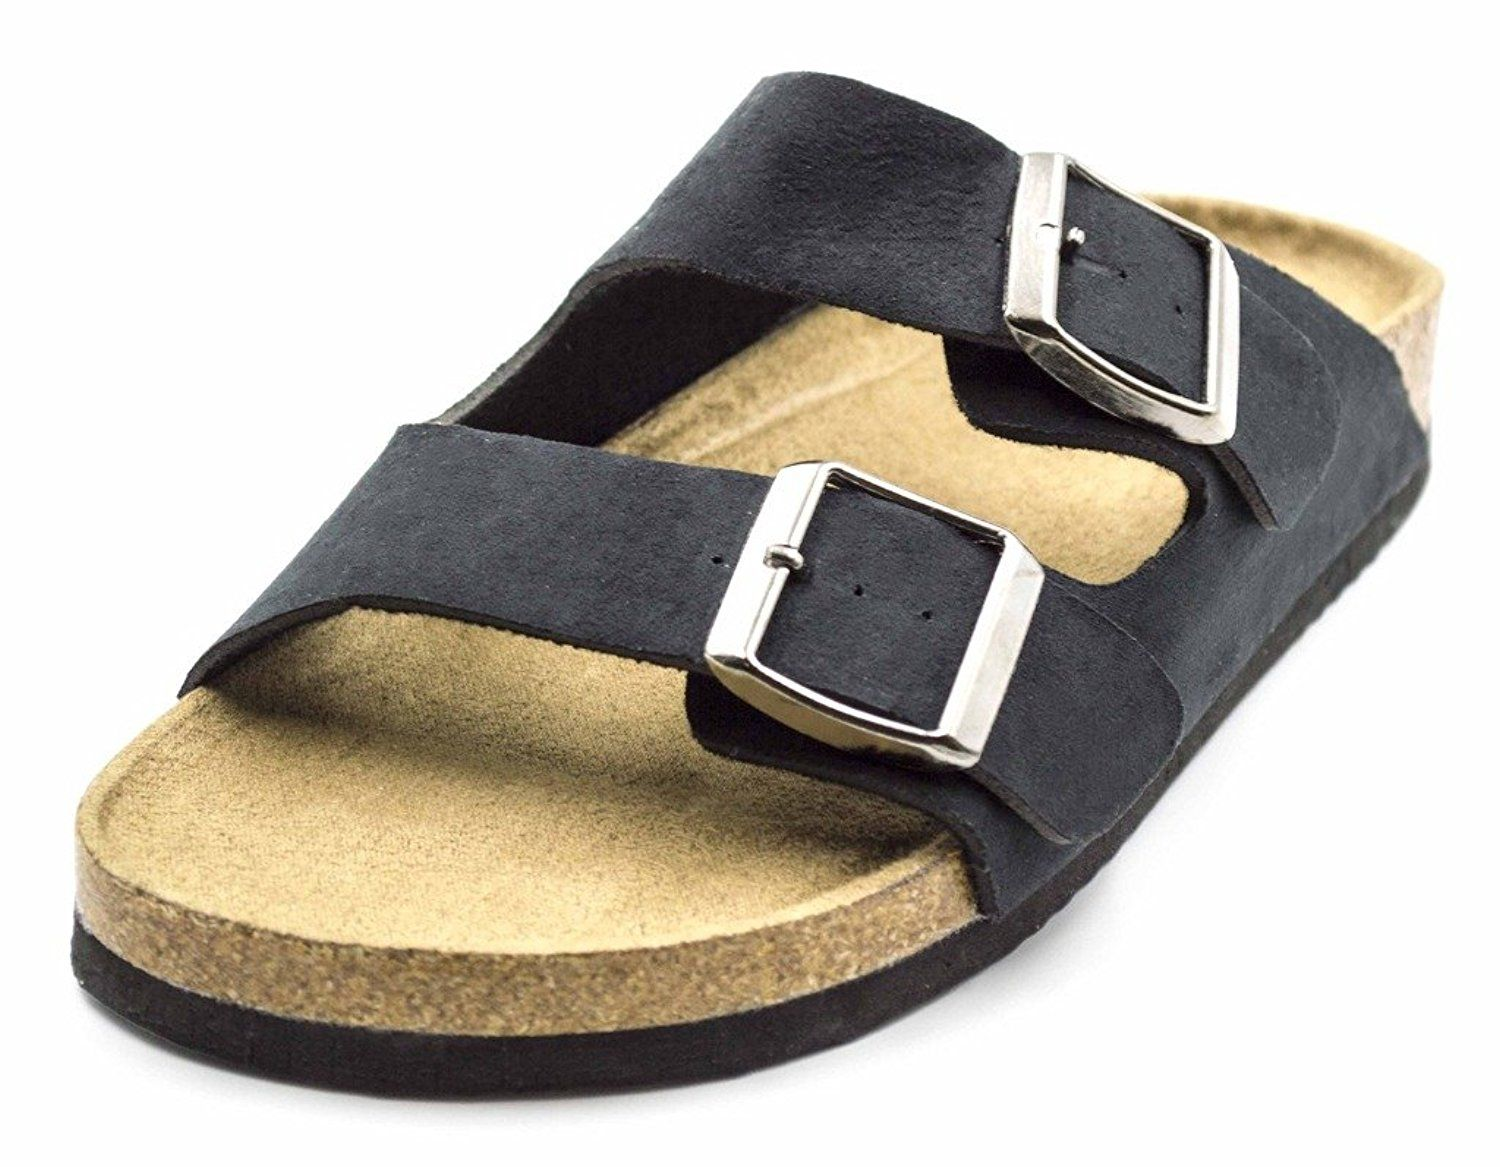 Orly Shoes Women's Two Buckle Strap